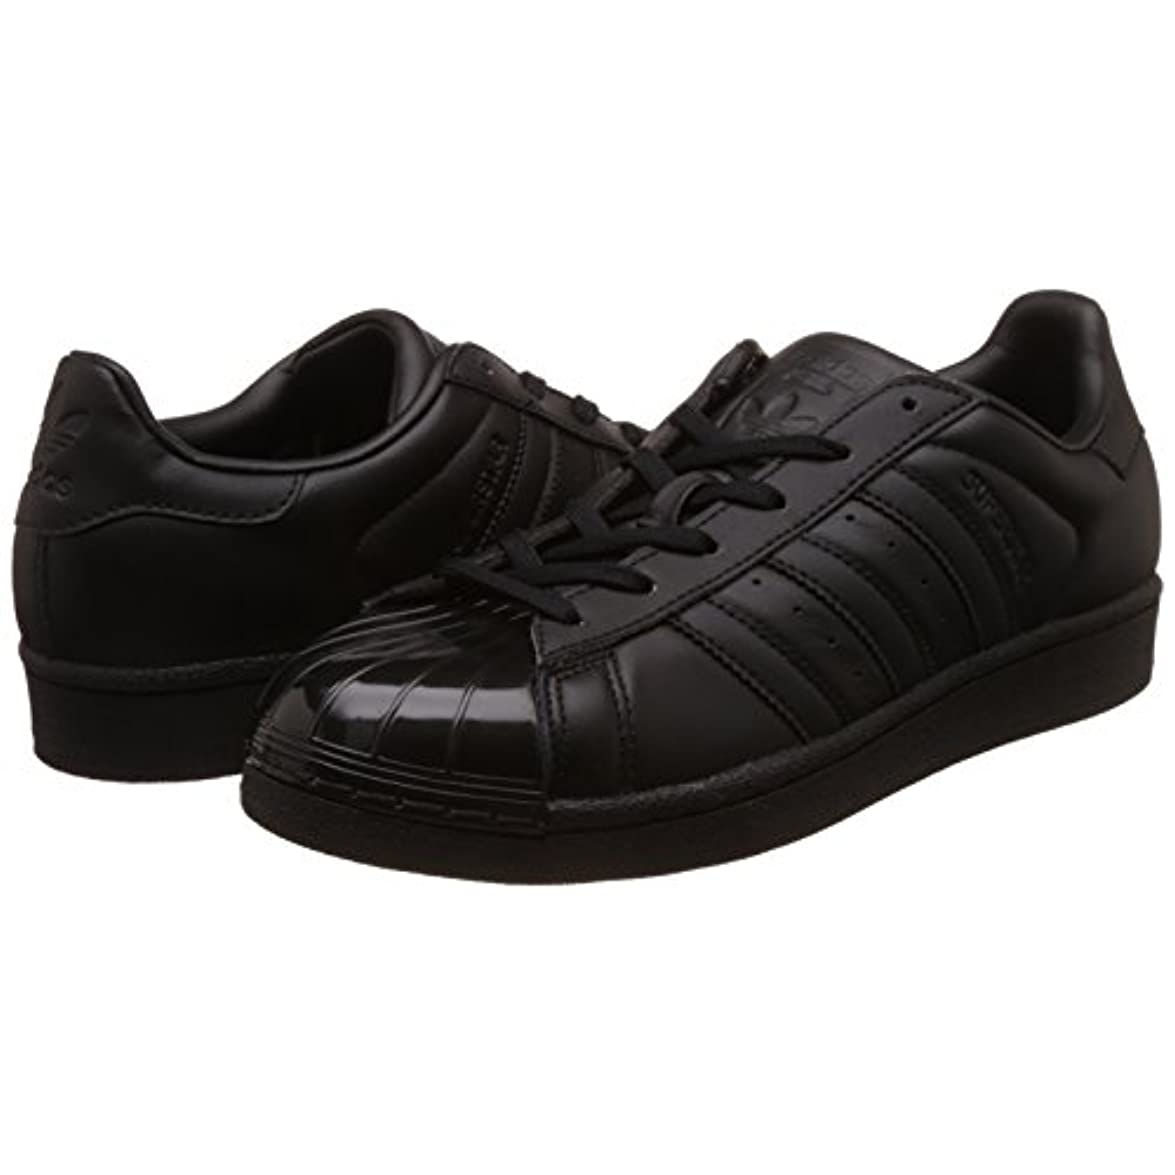 Adidas Superstar Glossy To Scarpe Da Basket Donna